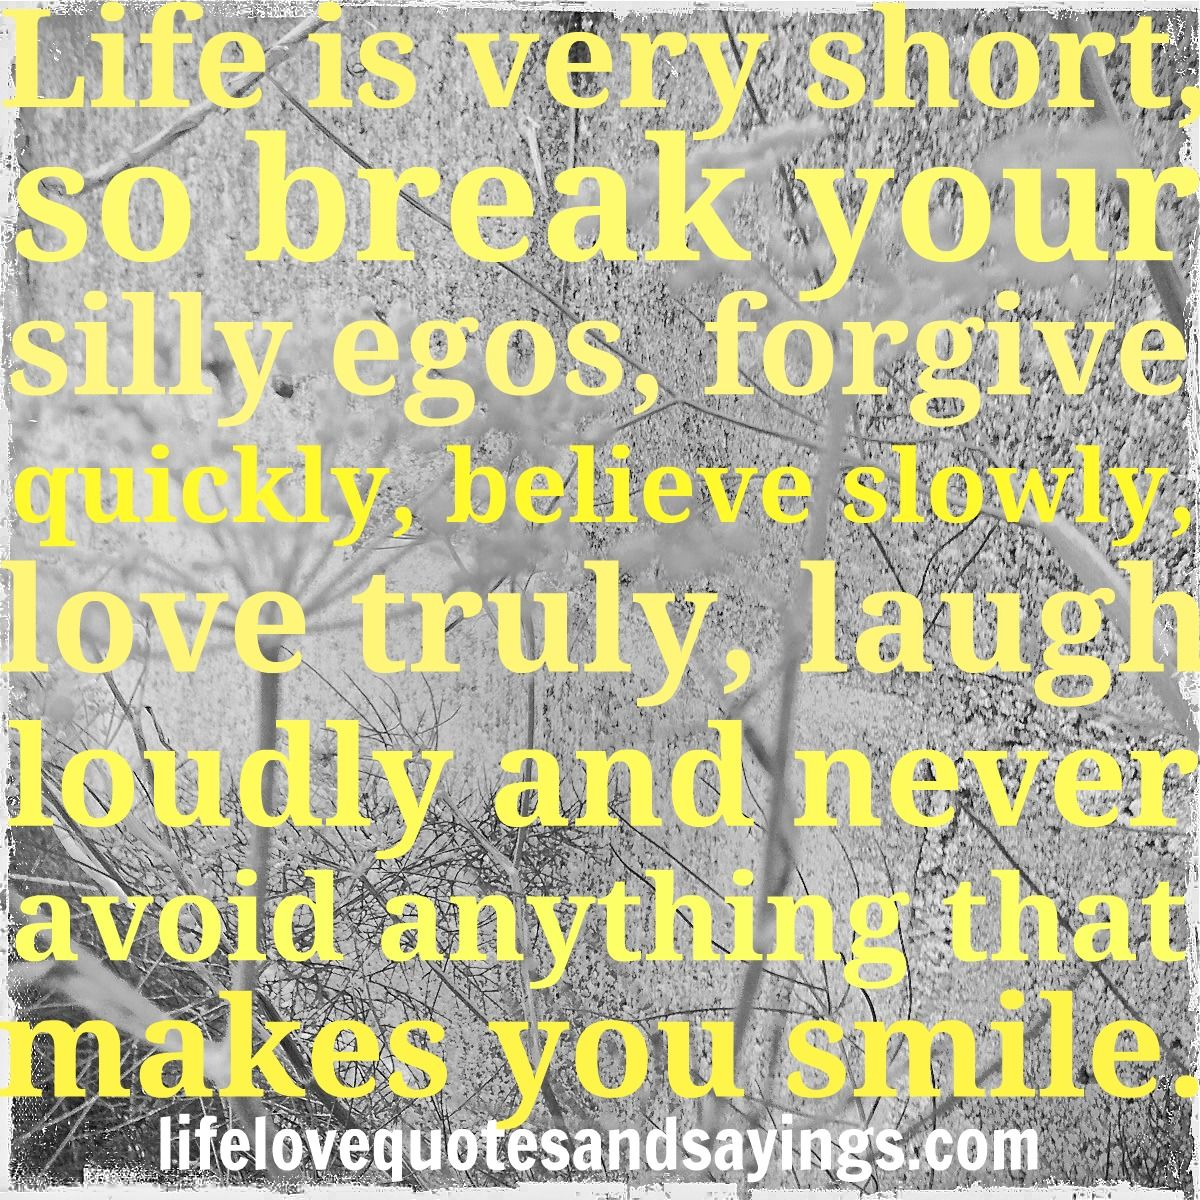 Very Short Quotes: Life Is Very Short, So Break Your Silly Egos, Forgive